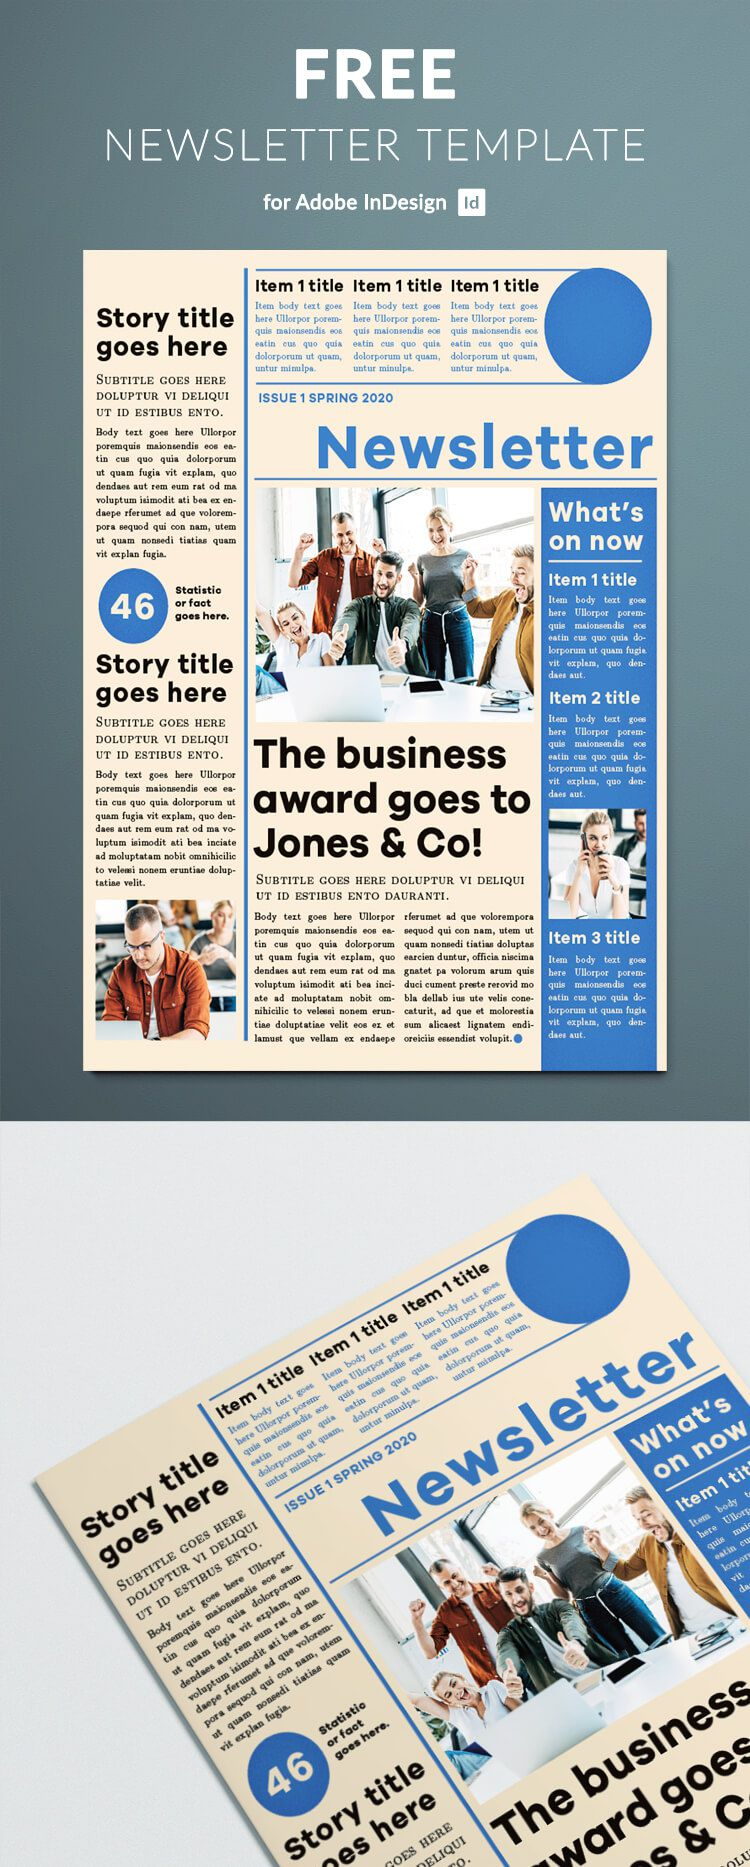 007 Stunning Adobe Indesign Newsletter Template Free Download Inspiration Full